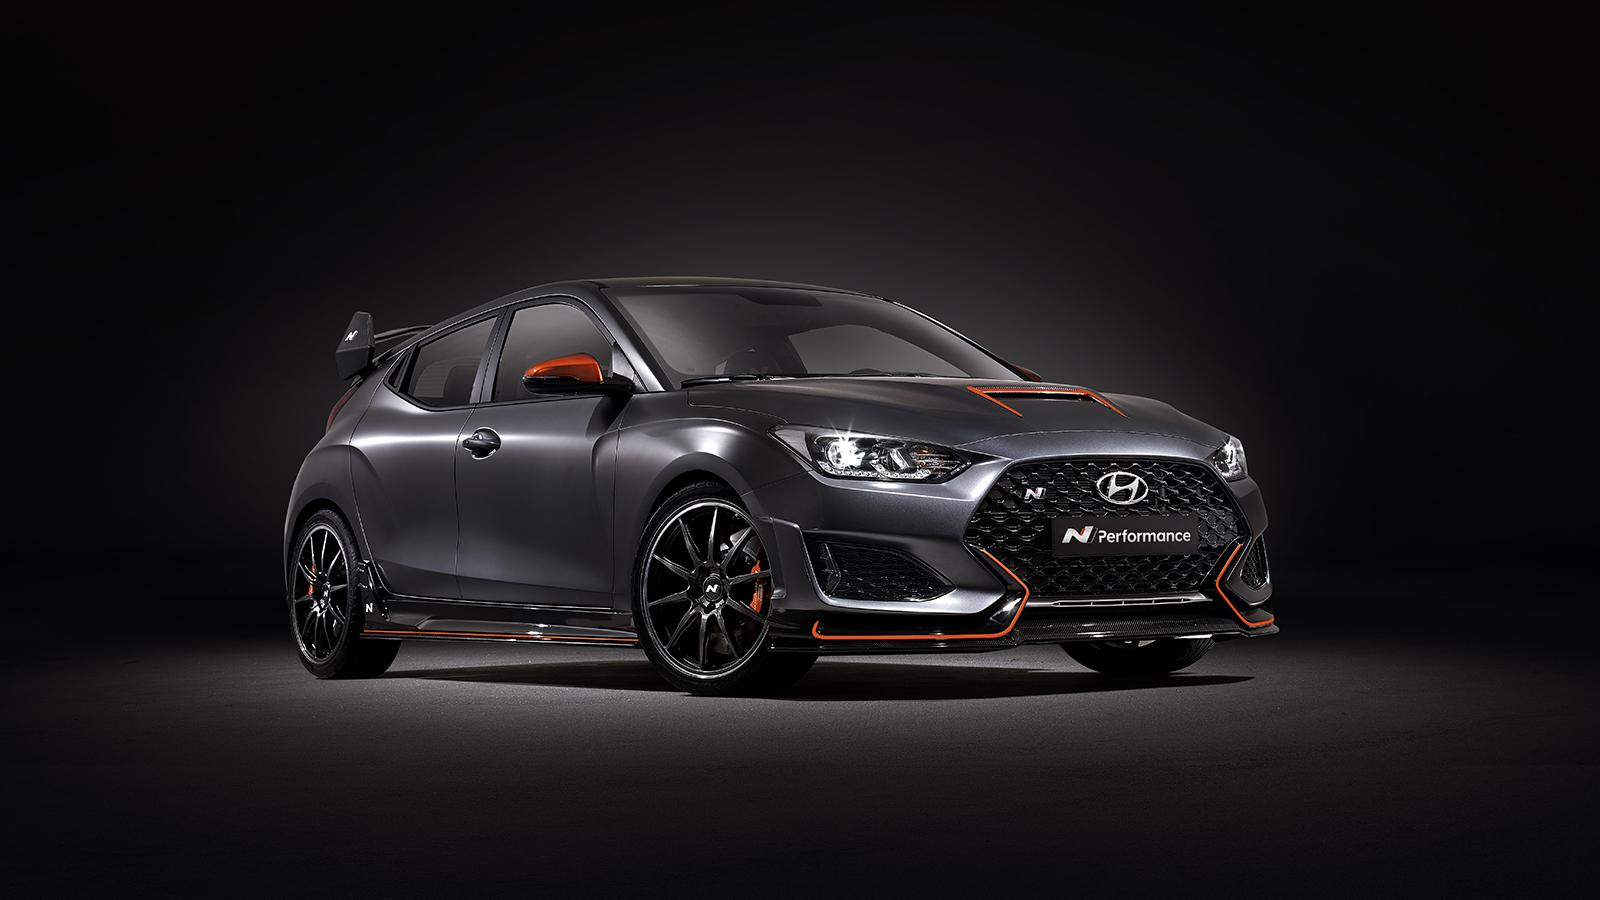 Hyundai Creates Veloster N Performance Concept For 2019 SEMA Show